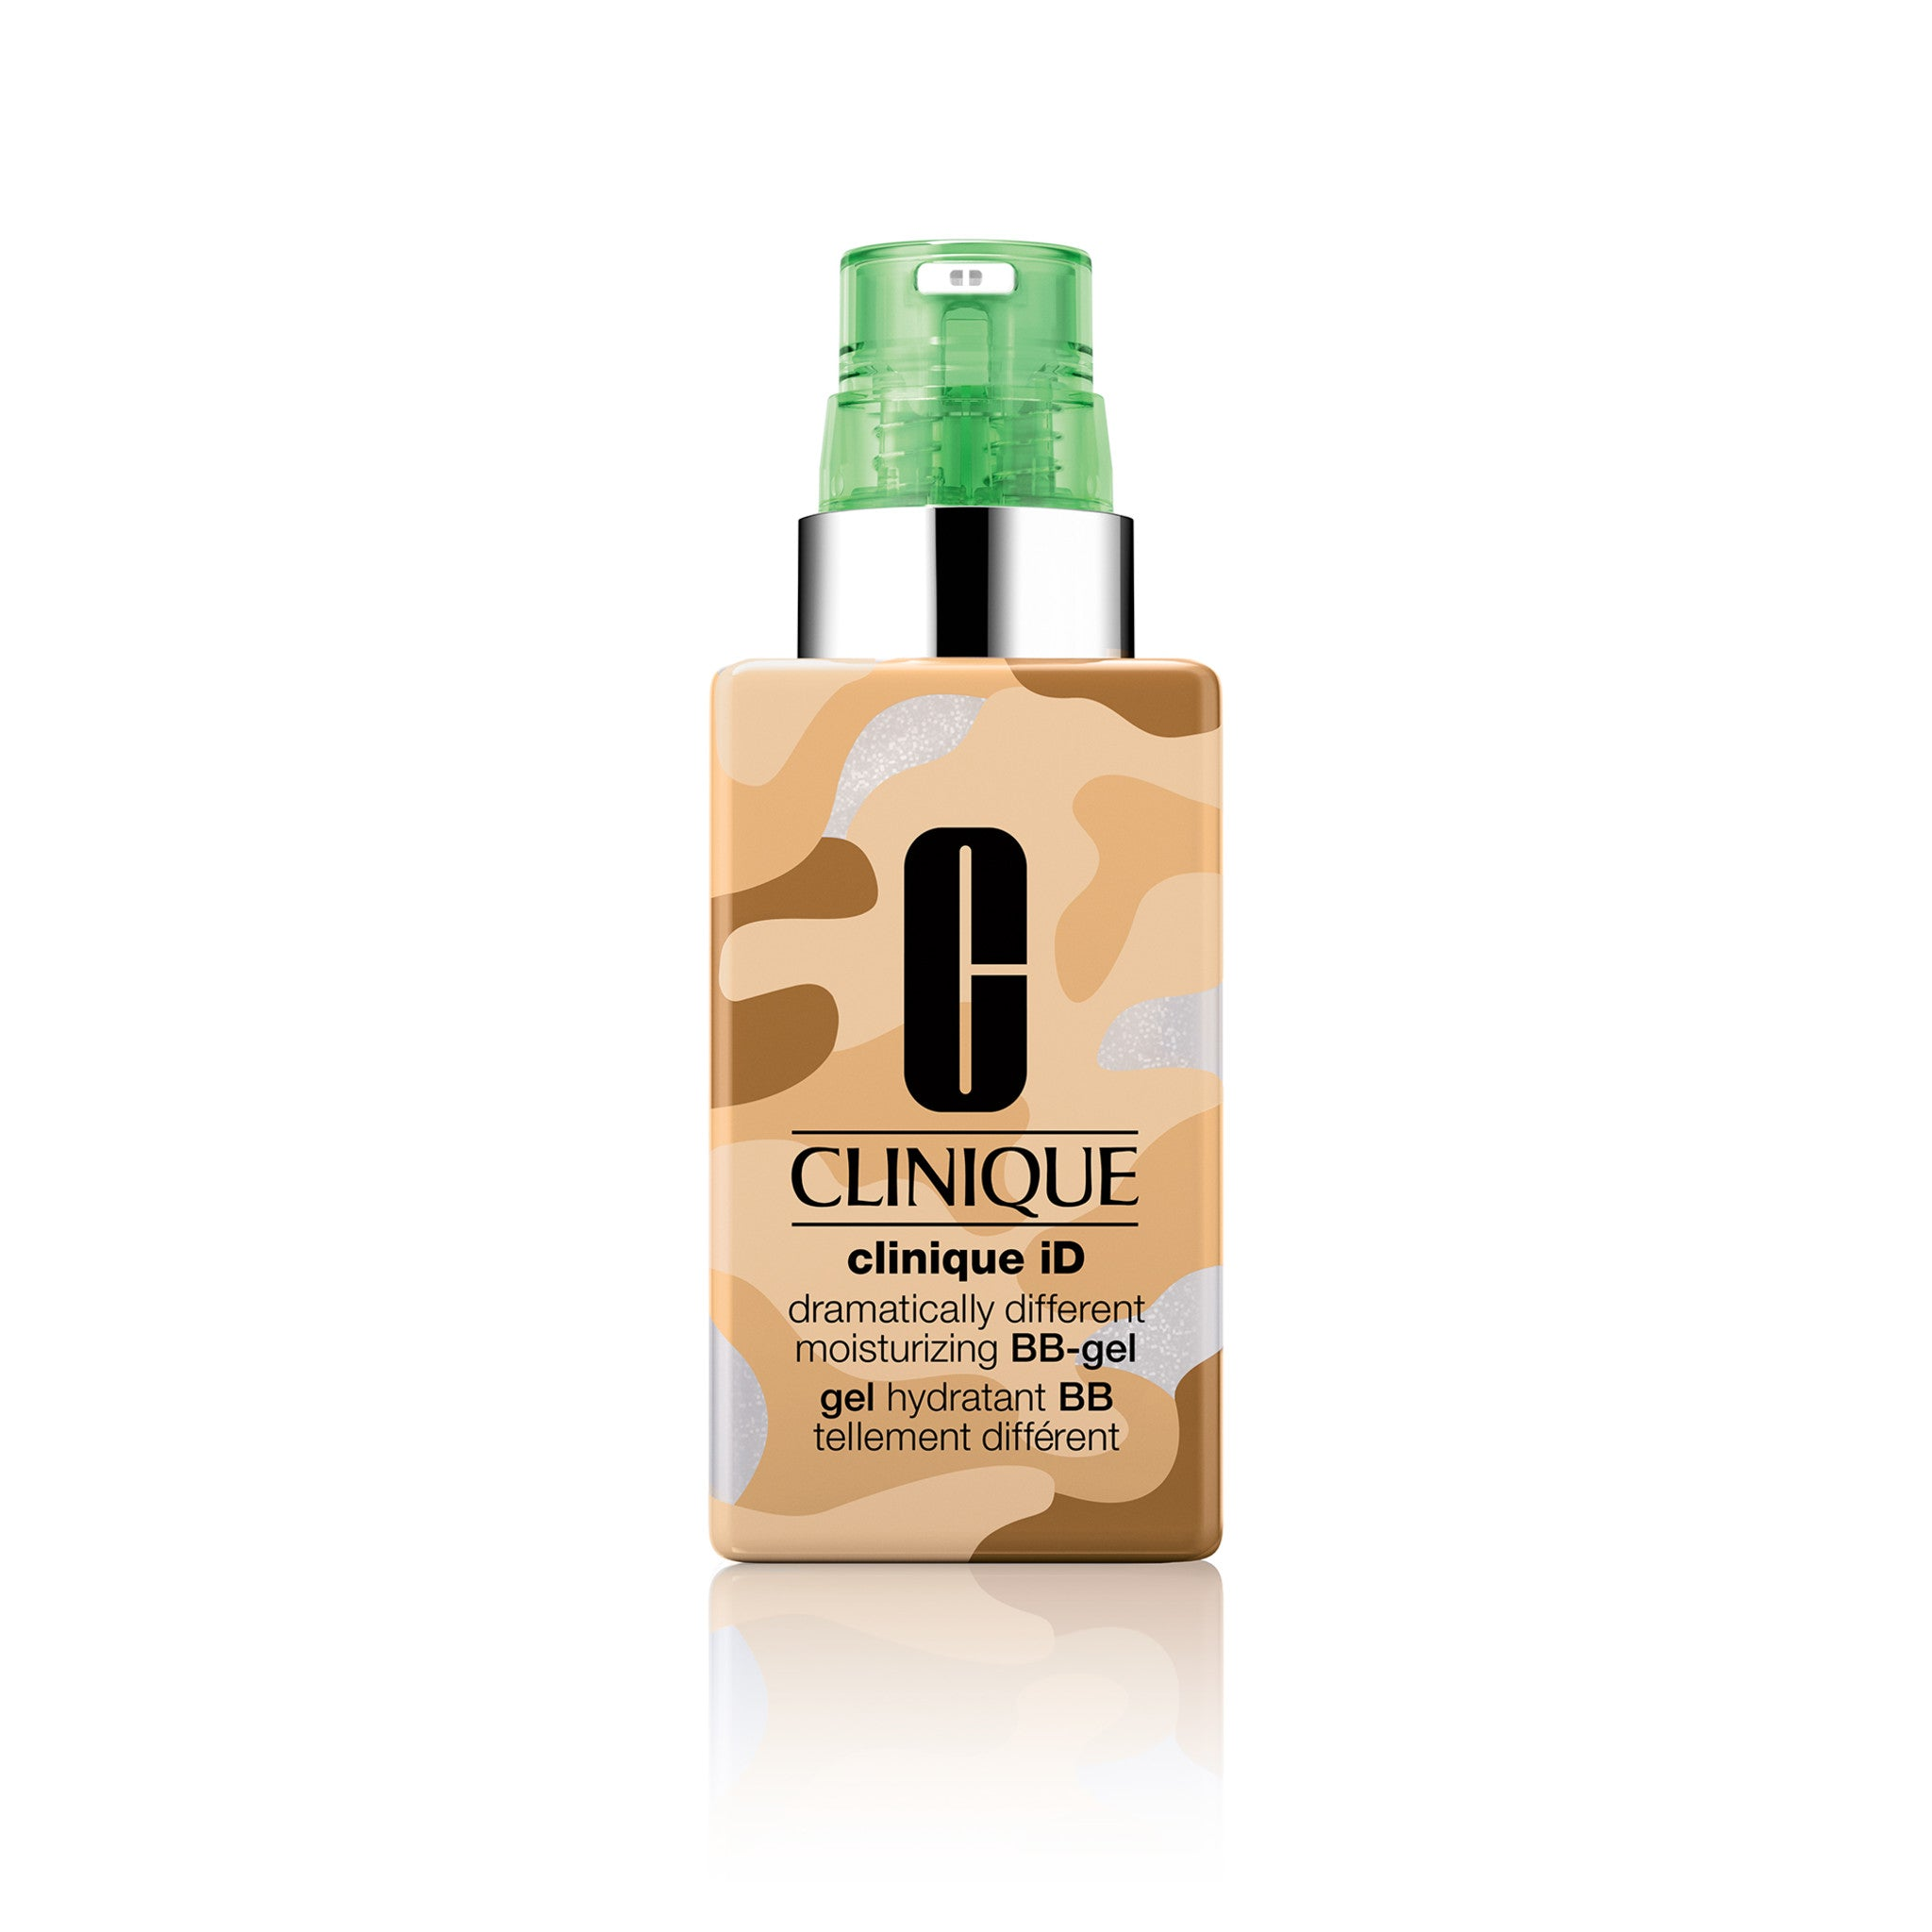 Clinique iD™: Dramatically Different™ Moisturizing BB-gel for Irritation